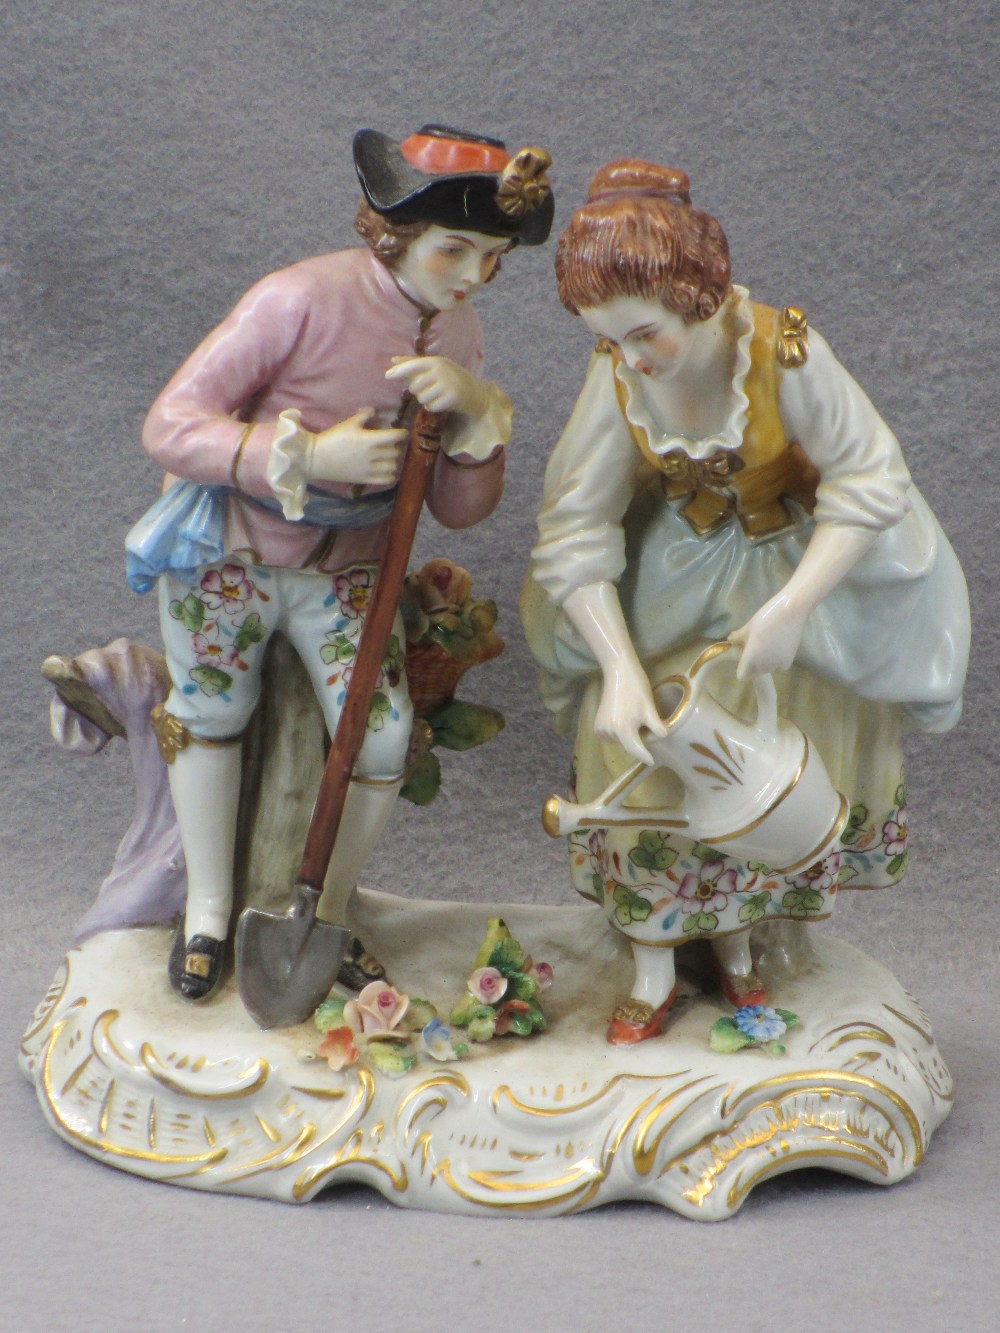 PORCELAIN & COMPOSITION CABINET FIGURINES, A COLLECTION including a Sitzendorf group of young man - Image 7 of 7